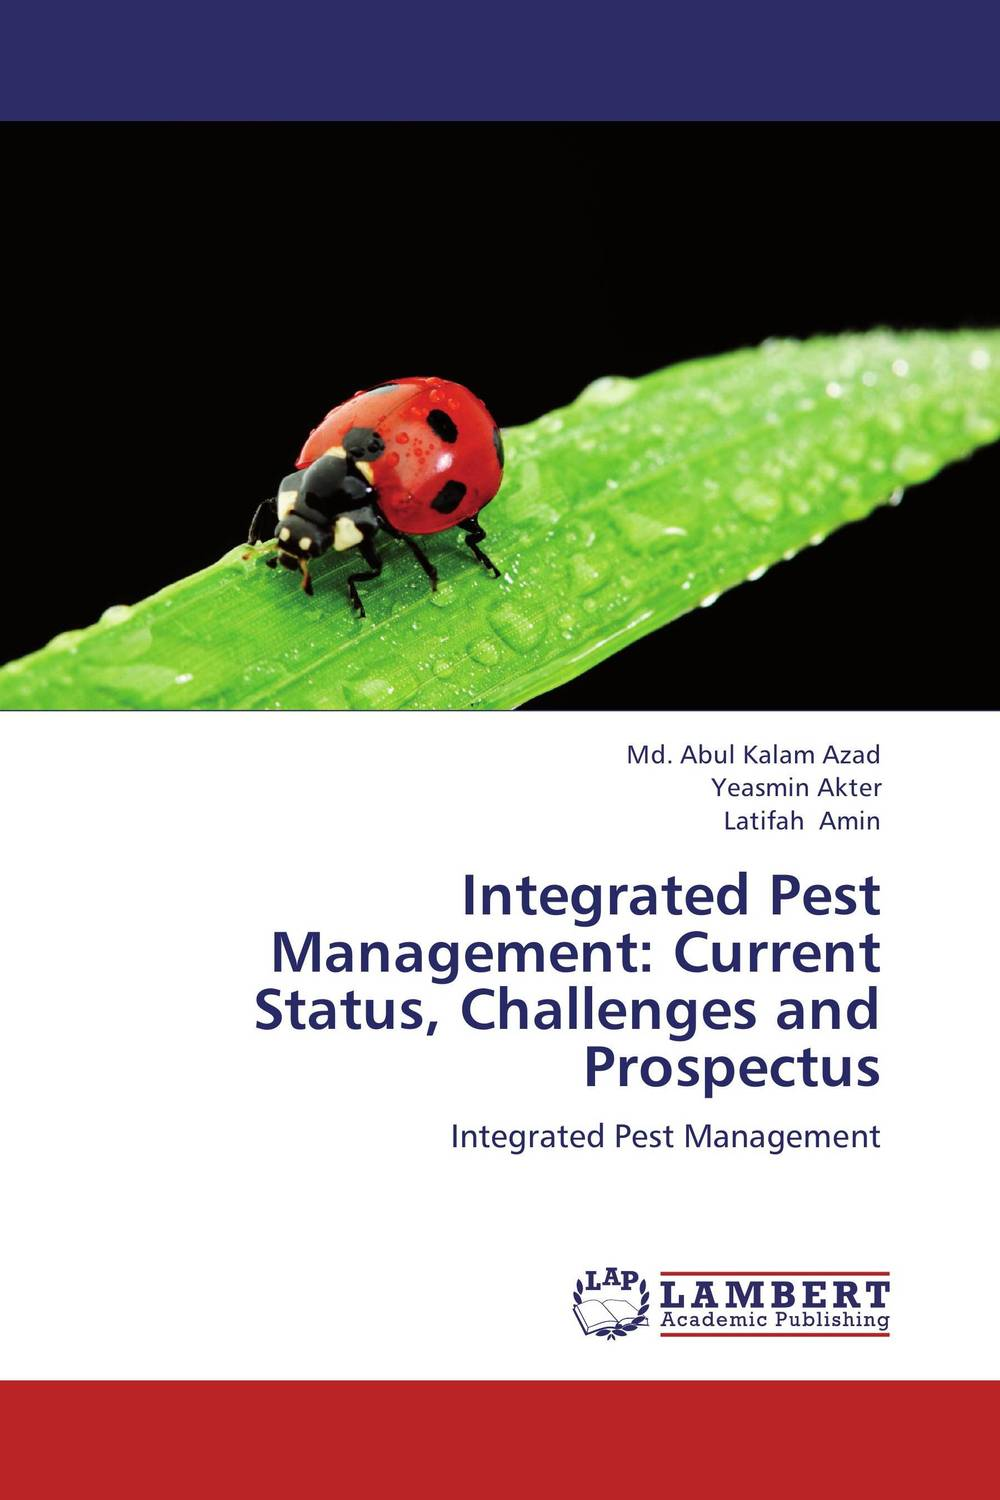 Integrated Pest Management: Current Status, Challenges and Prospectus indigenous knowledge and techniques for key pest animals management